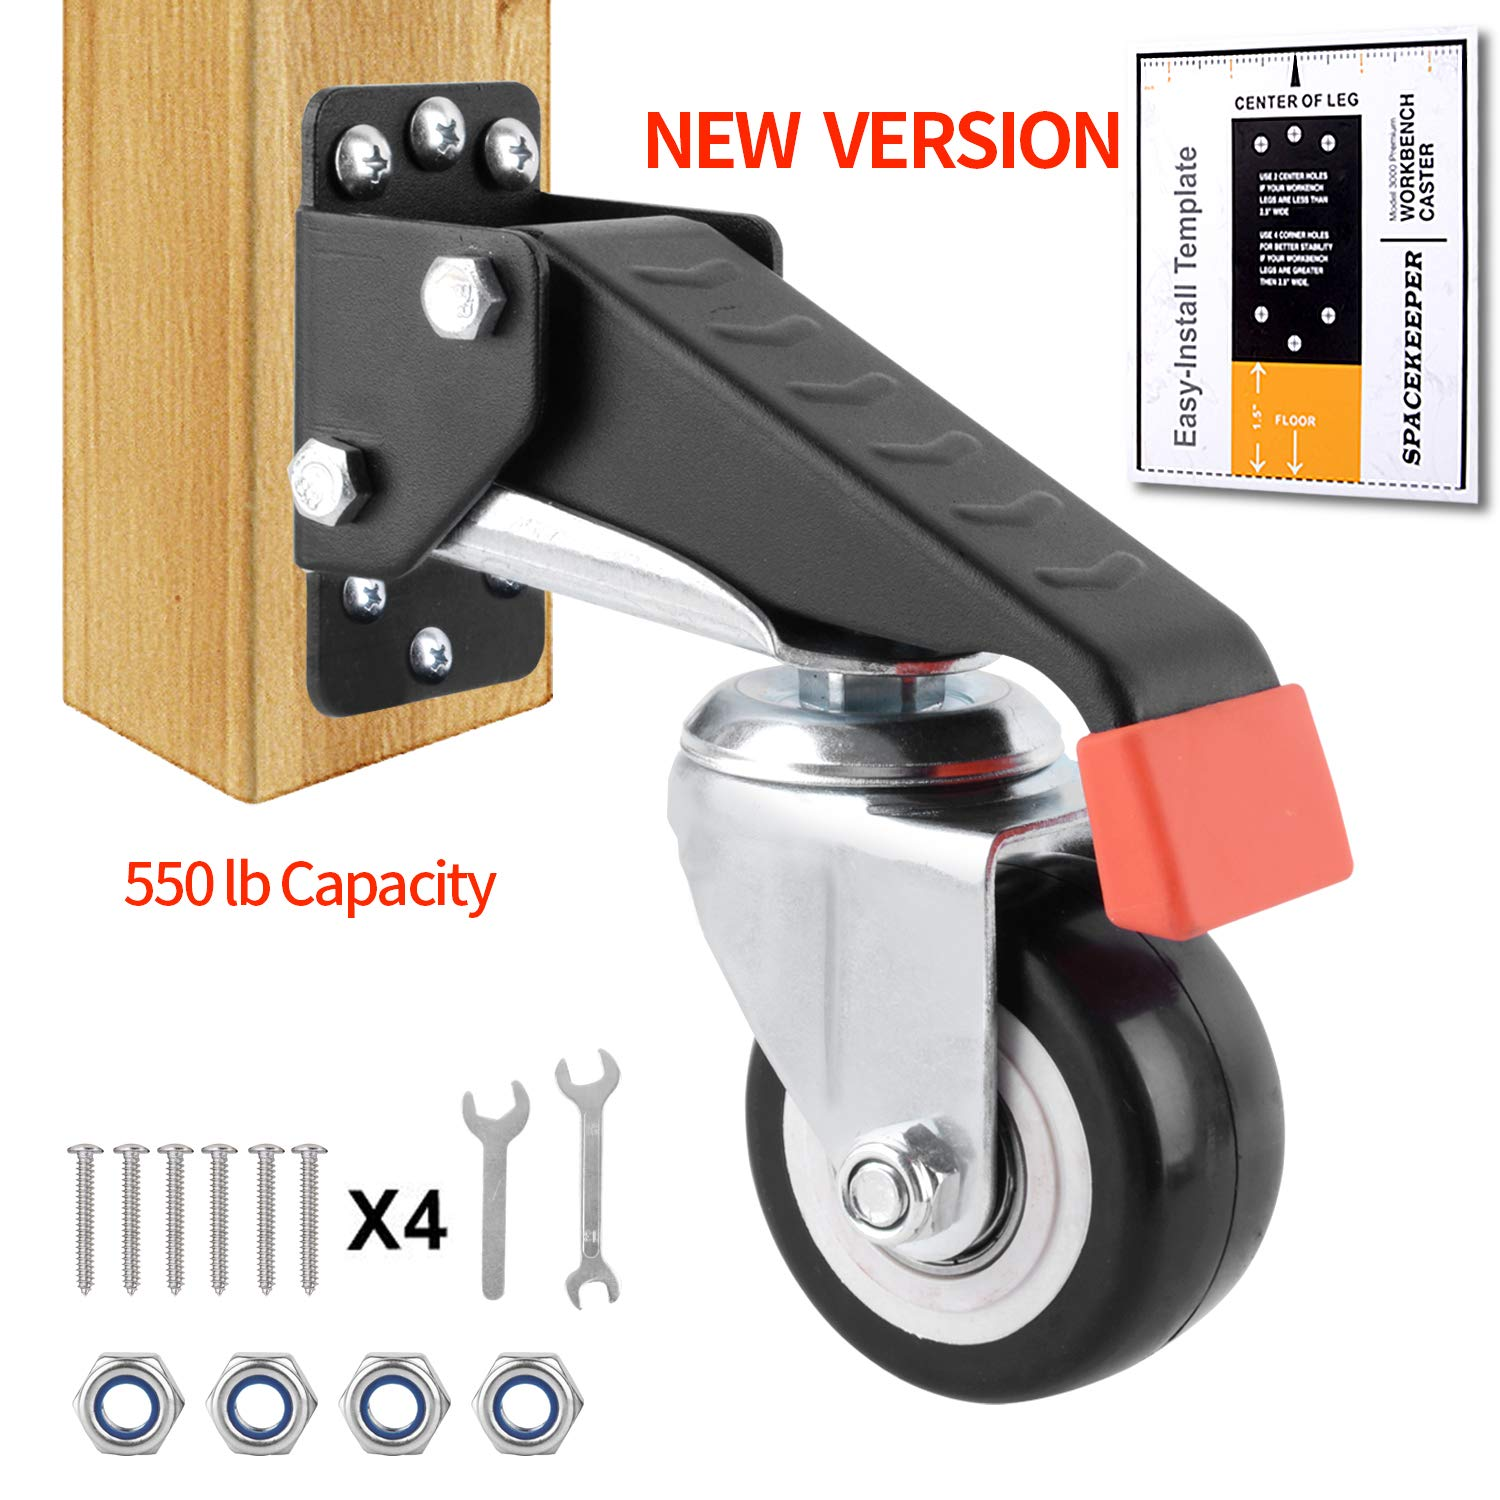 SPACEKEEPER Workbench Caster kit - 4 Heavy Duty Retractable Casters 550 lbs Weight Capacity Urethane Wheels Designed for Workbenches Machinery & Tables, Bonus Free Install Template [New Version]